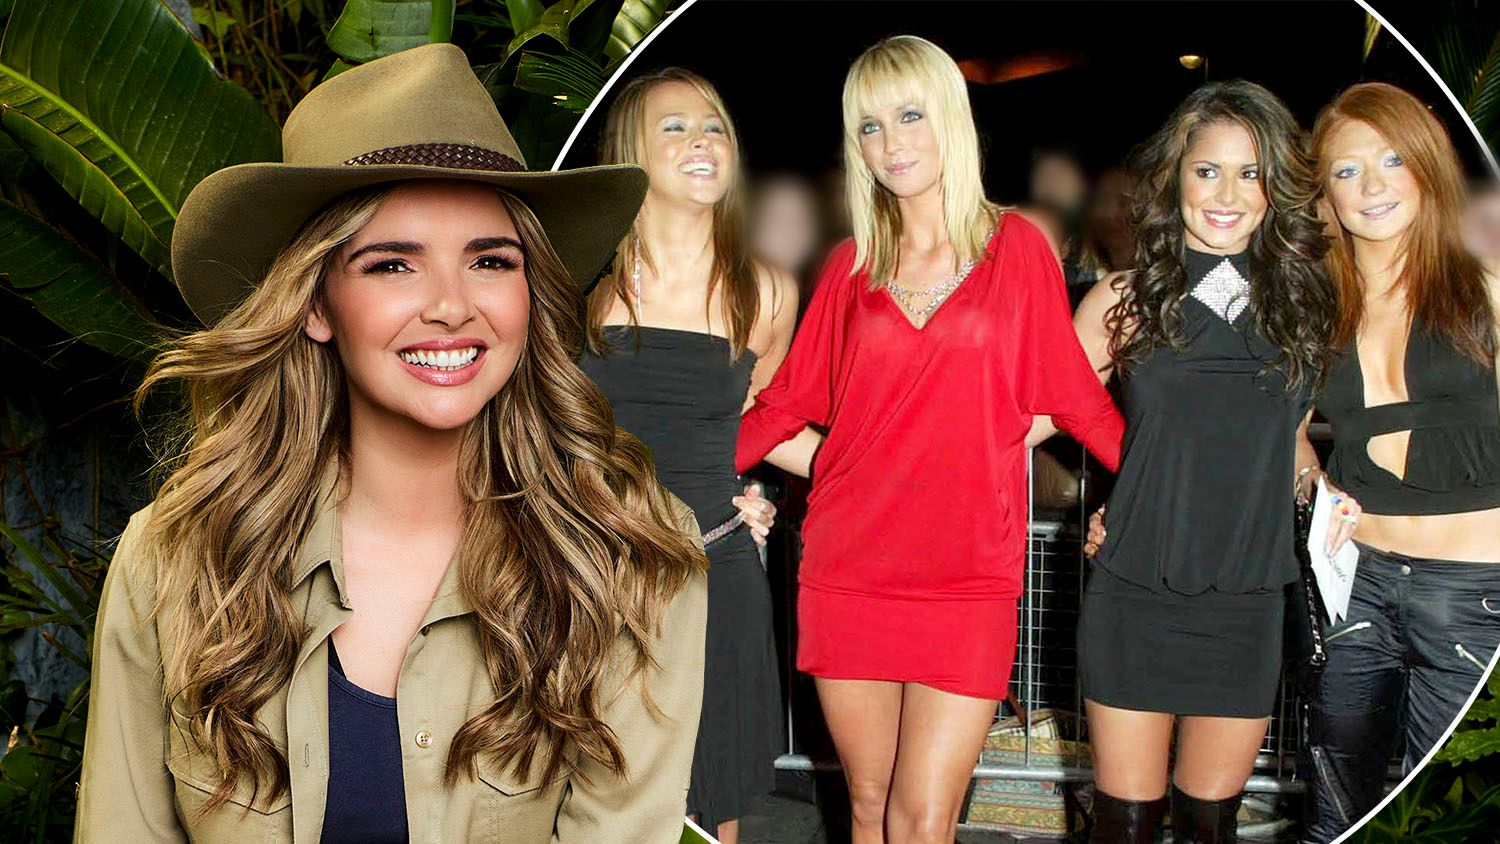 I'm A Celeb's Nadine Coyle spills the beans on what Girls Aloud was REALLY like